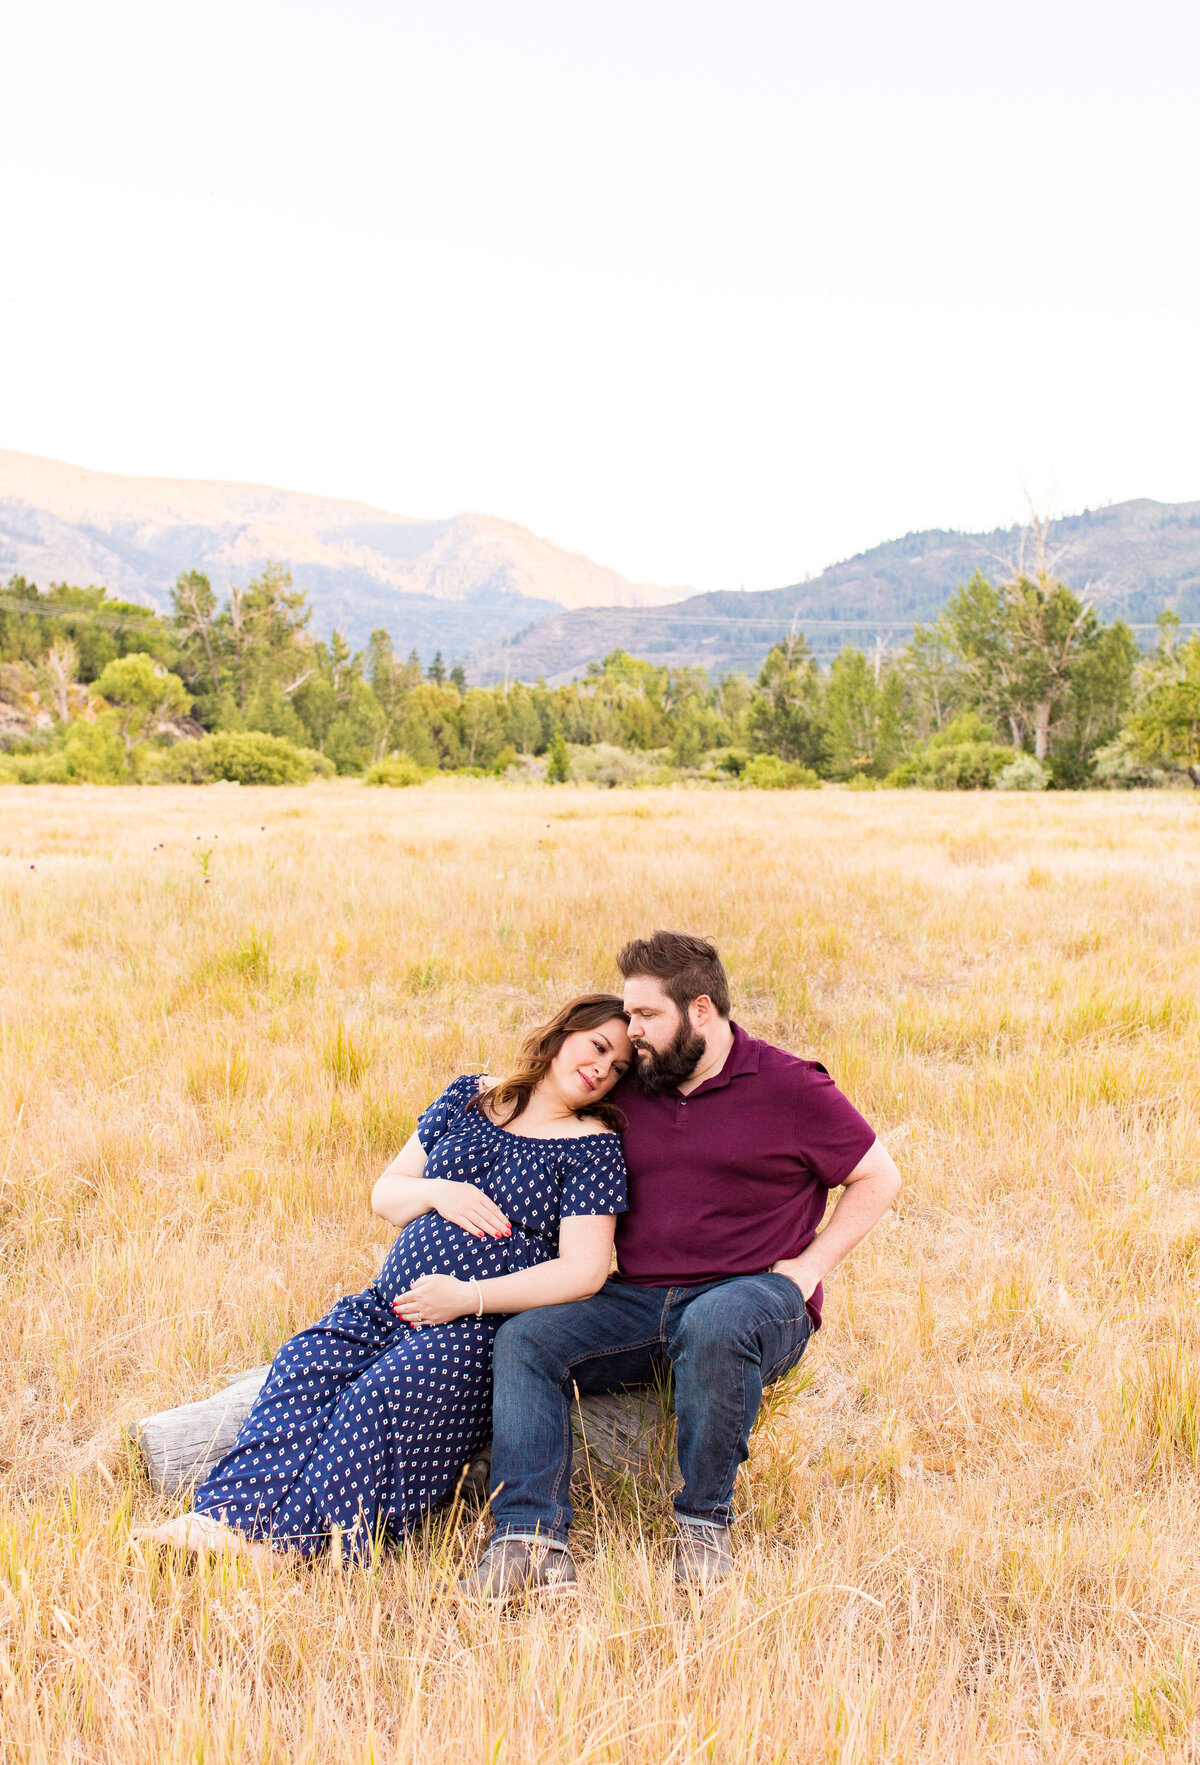 Ashley&JoelMaternitySession2020-50